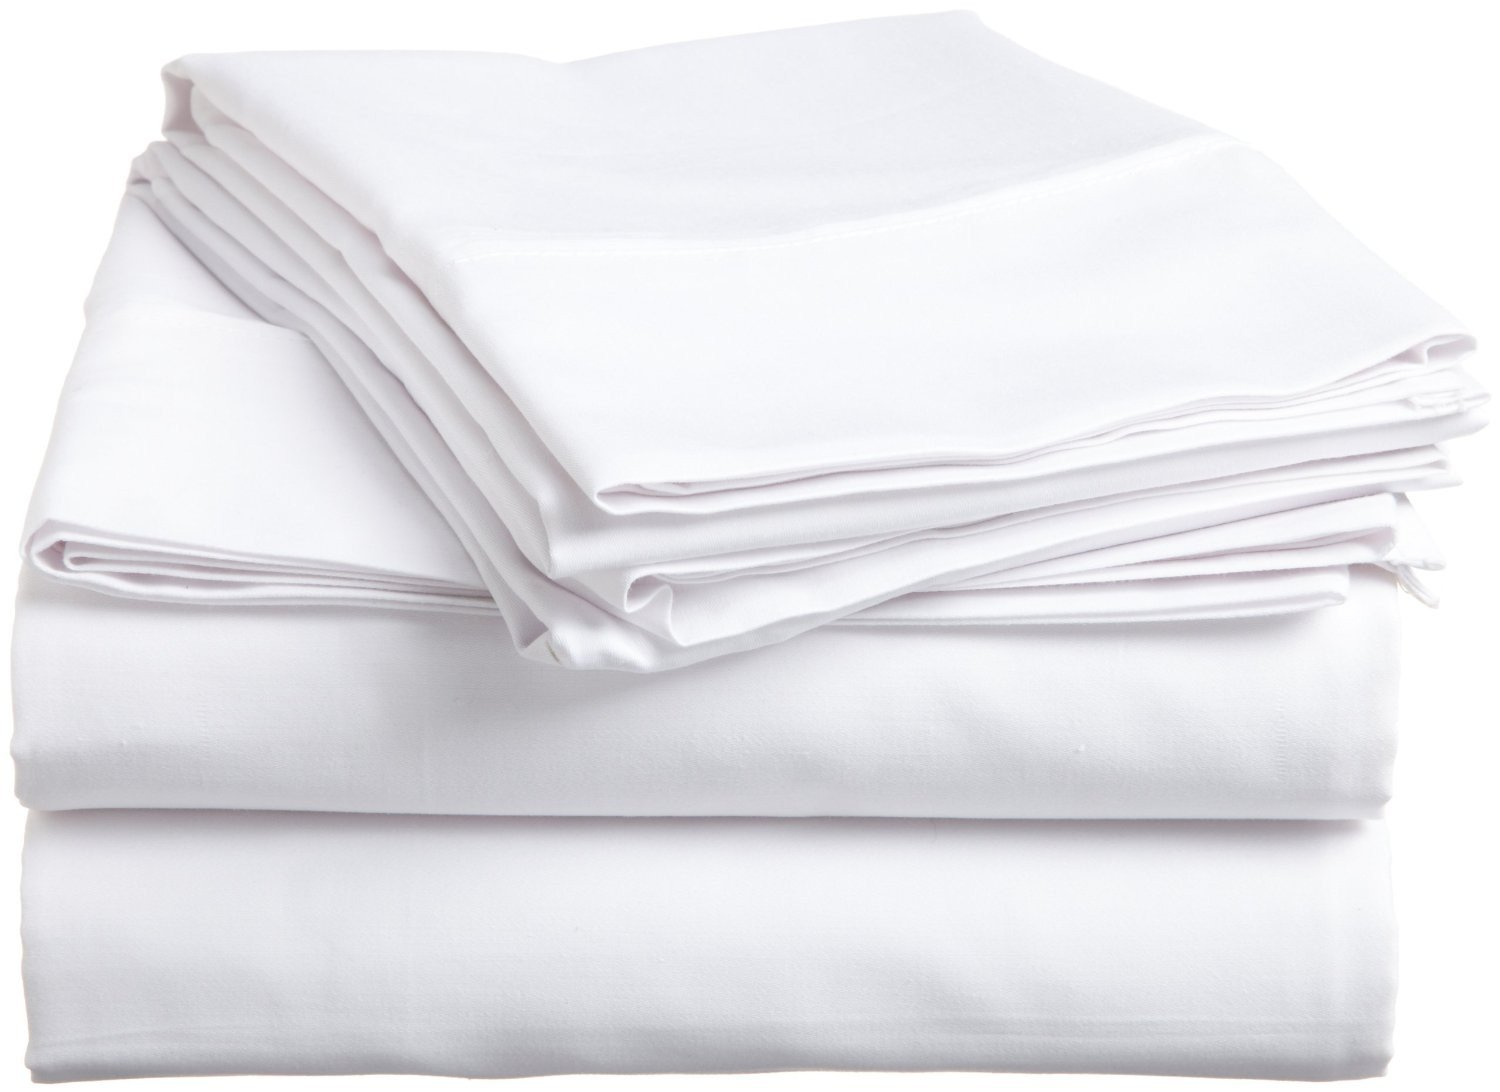 JMR Flat Draw Bed Sheets Muslin T130 Cotton Blend (54x90, white 2 piece)